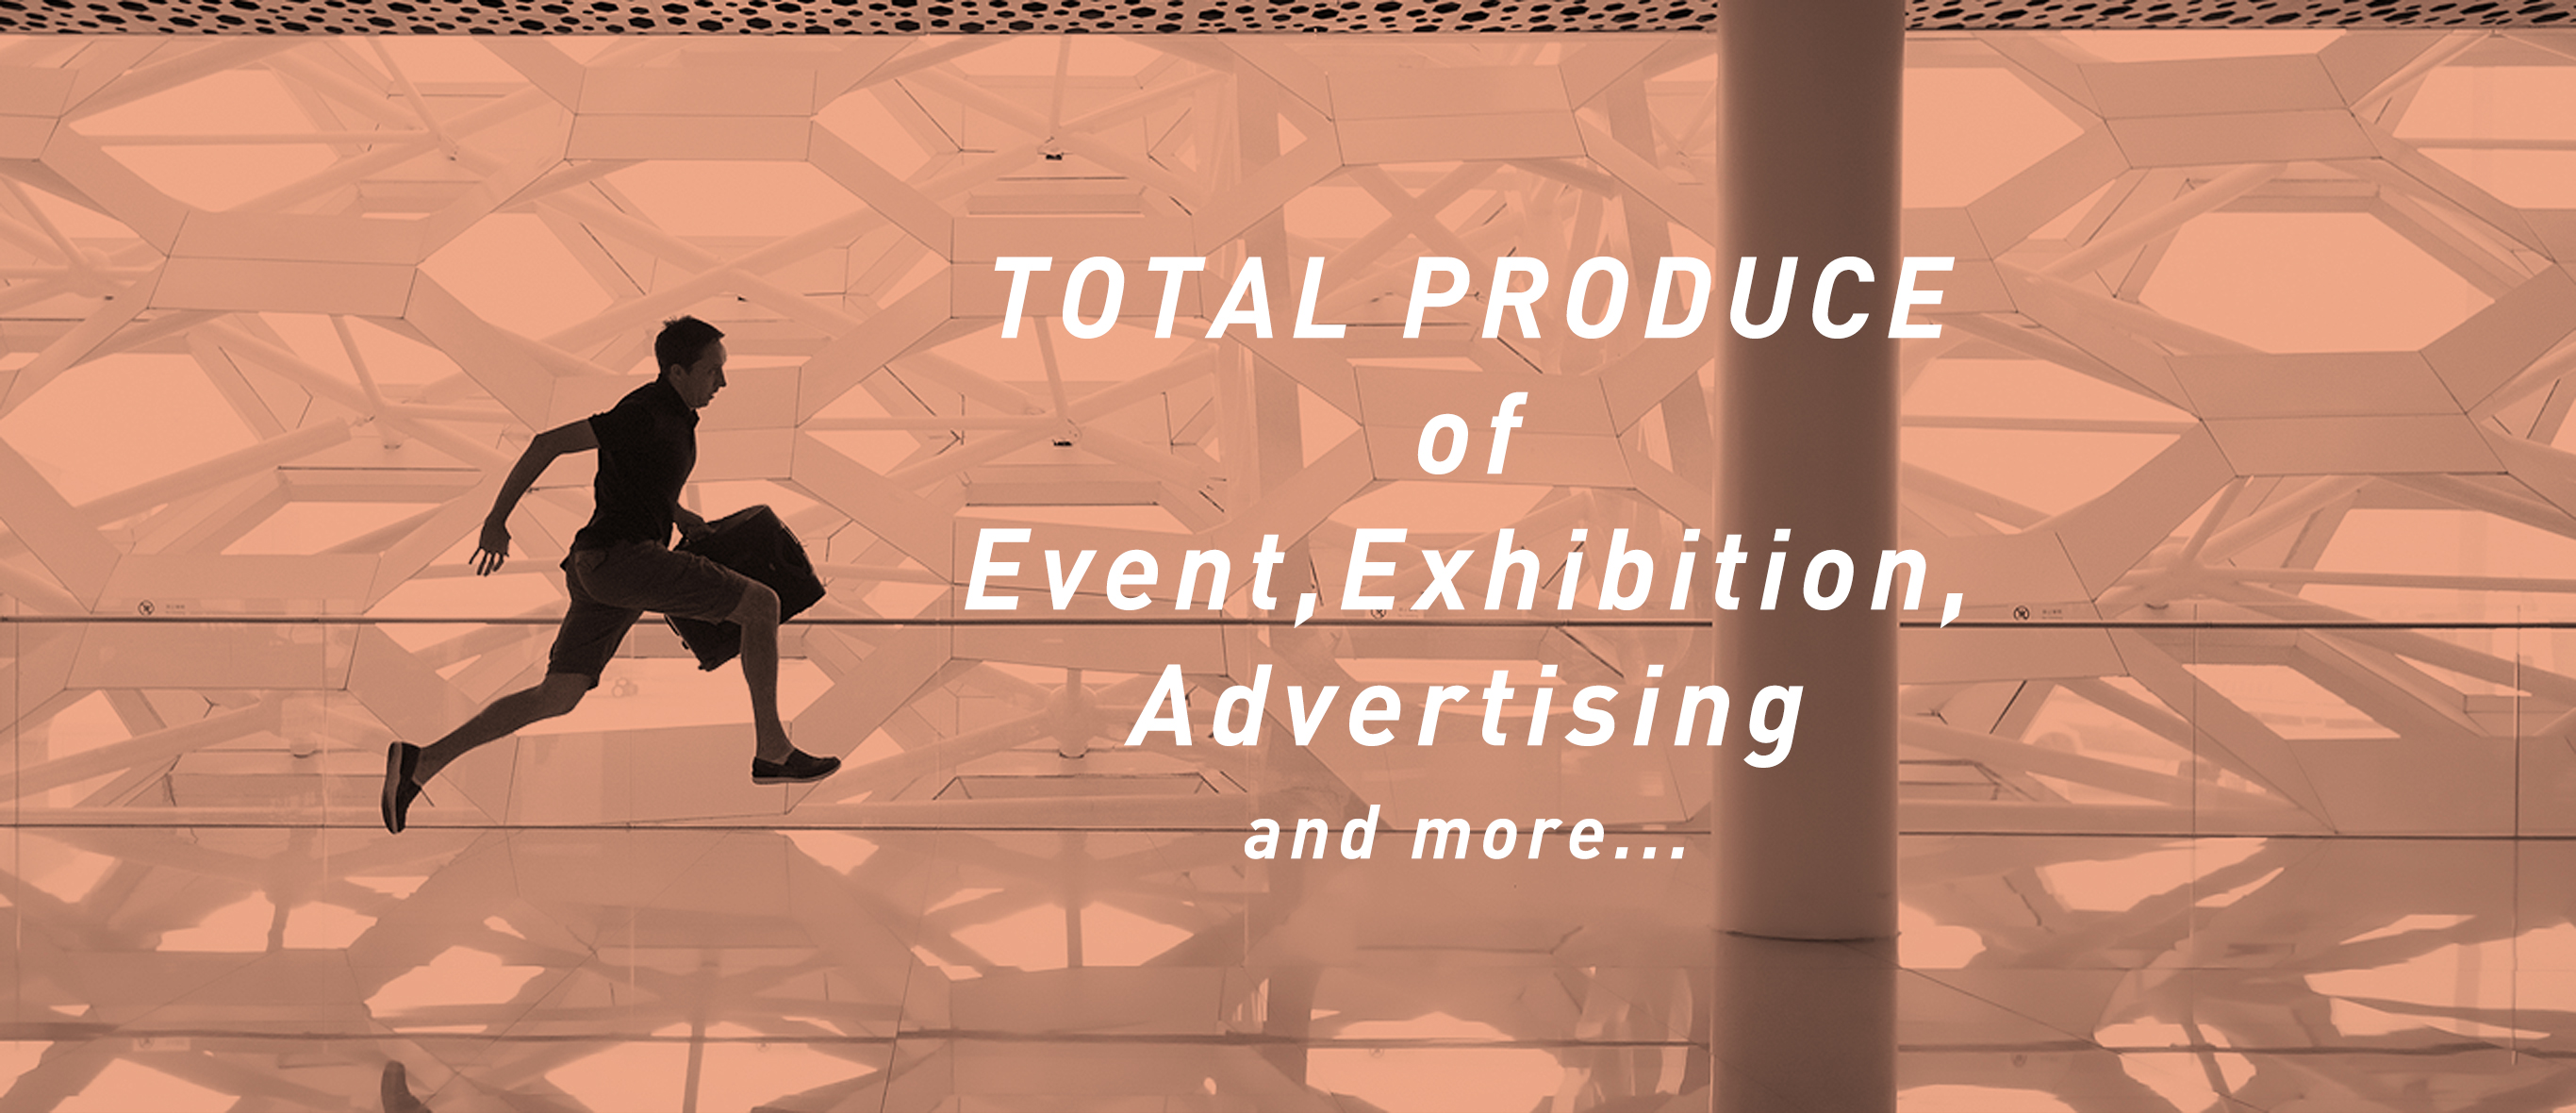 TOTAL PRODUCE of Event,Exhivition and more...